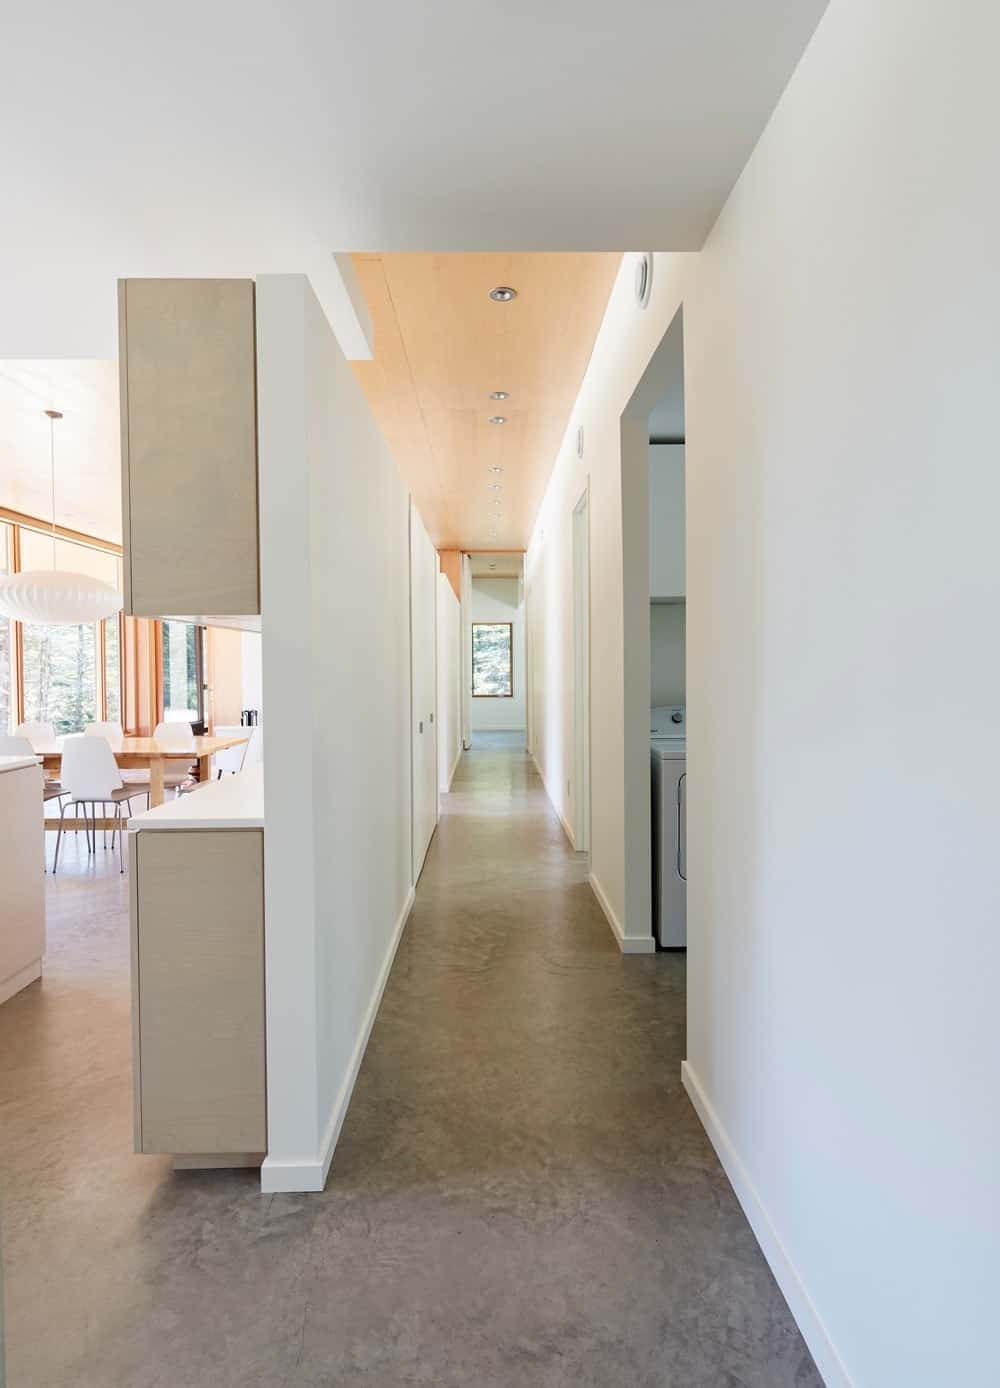 Hallway leading to kitchen white white walls and smooth flooring along with recessed ceiling lights. Photo credit: Janet Kimber